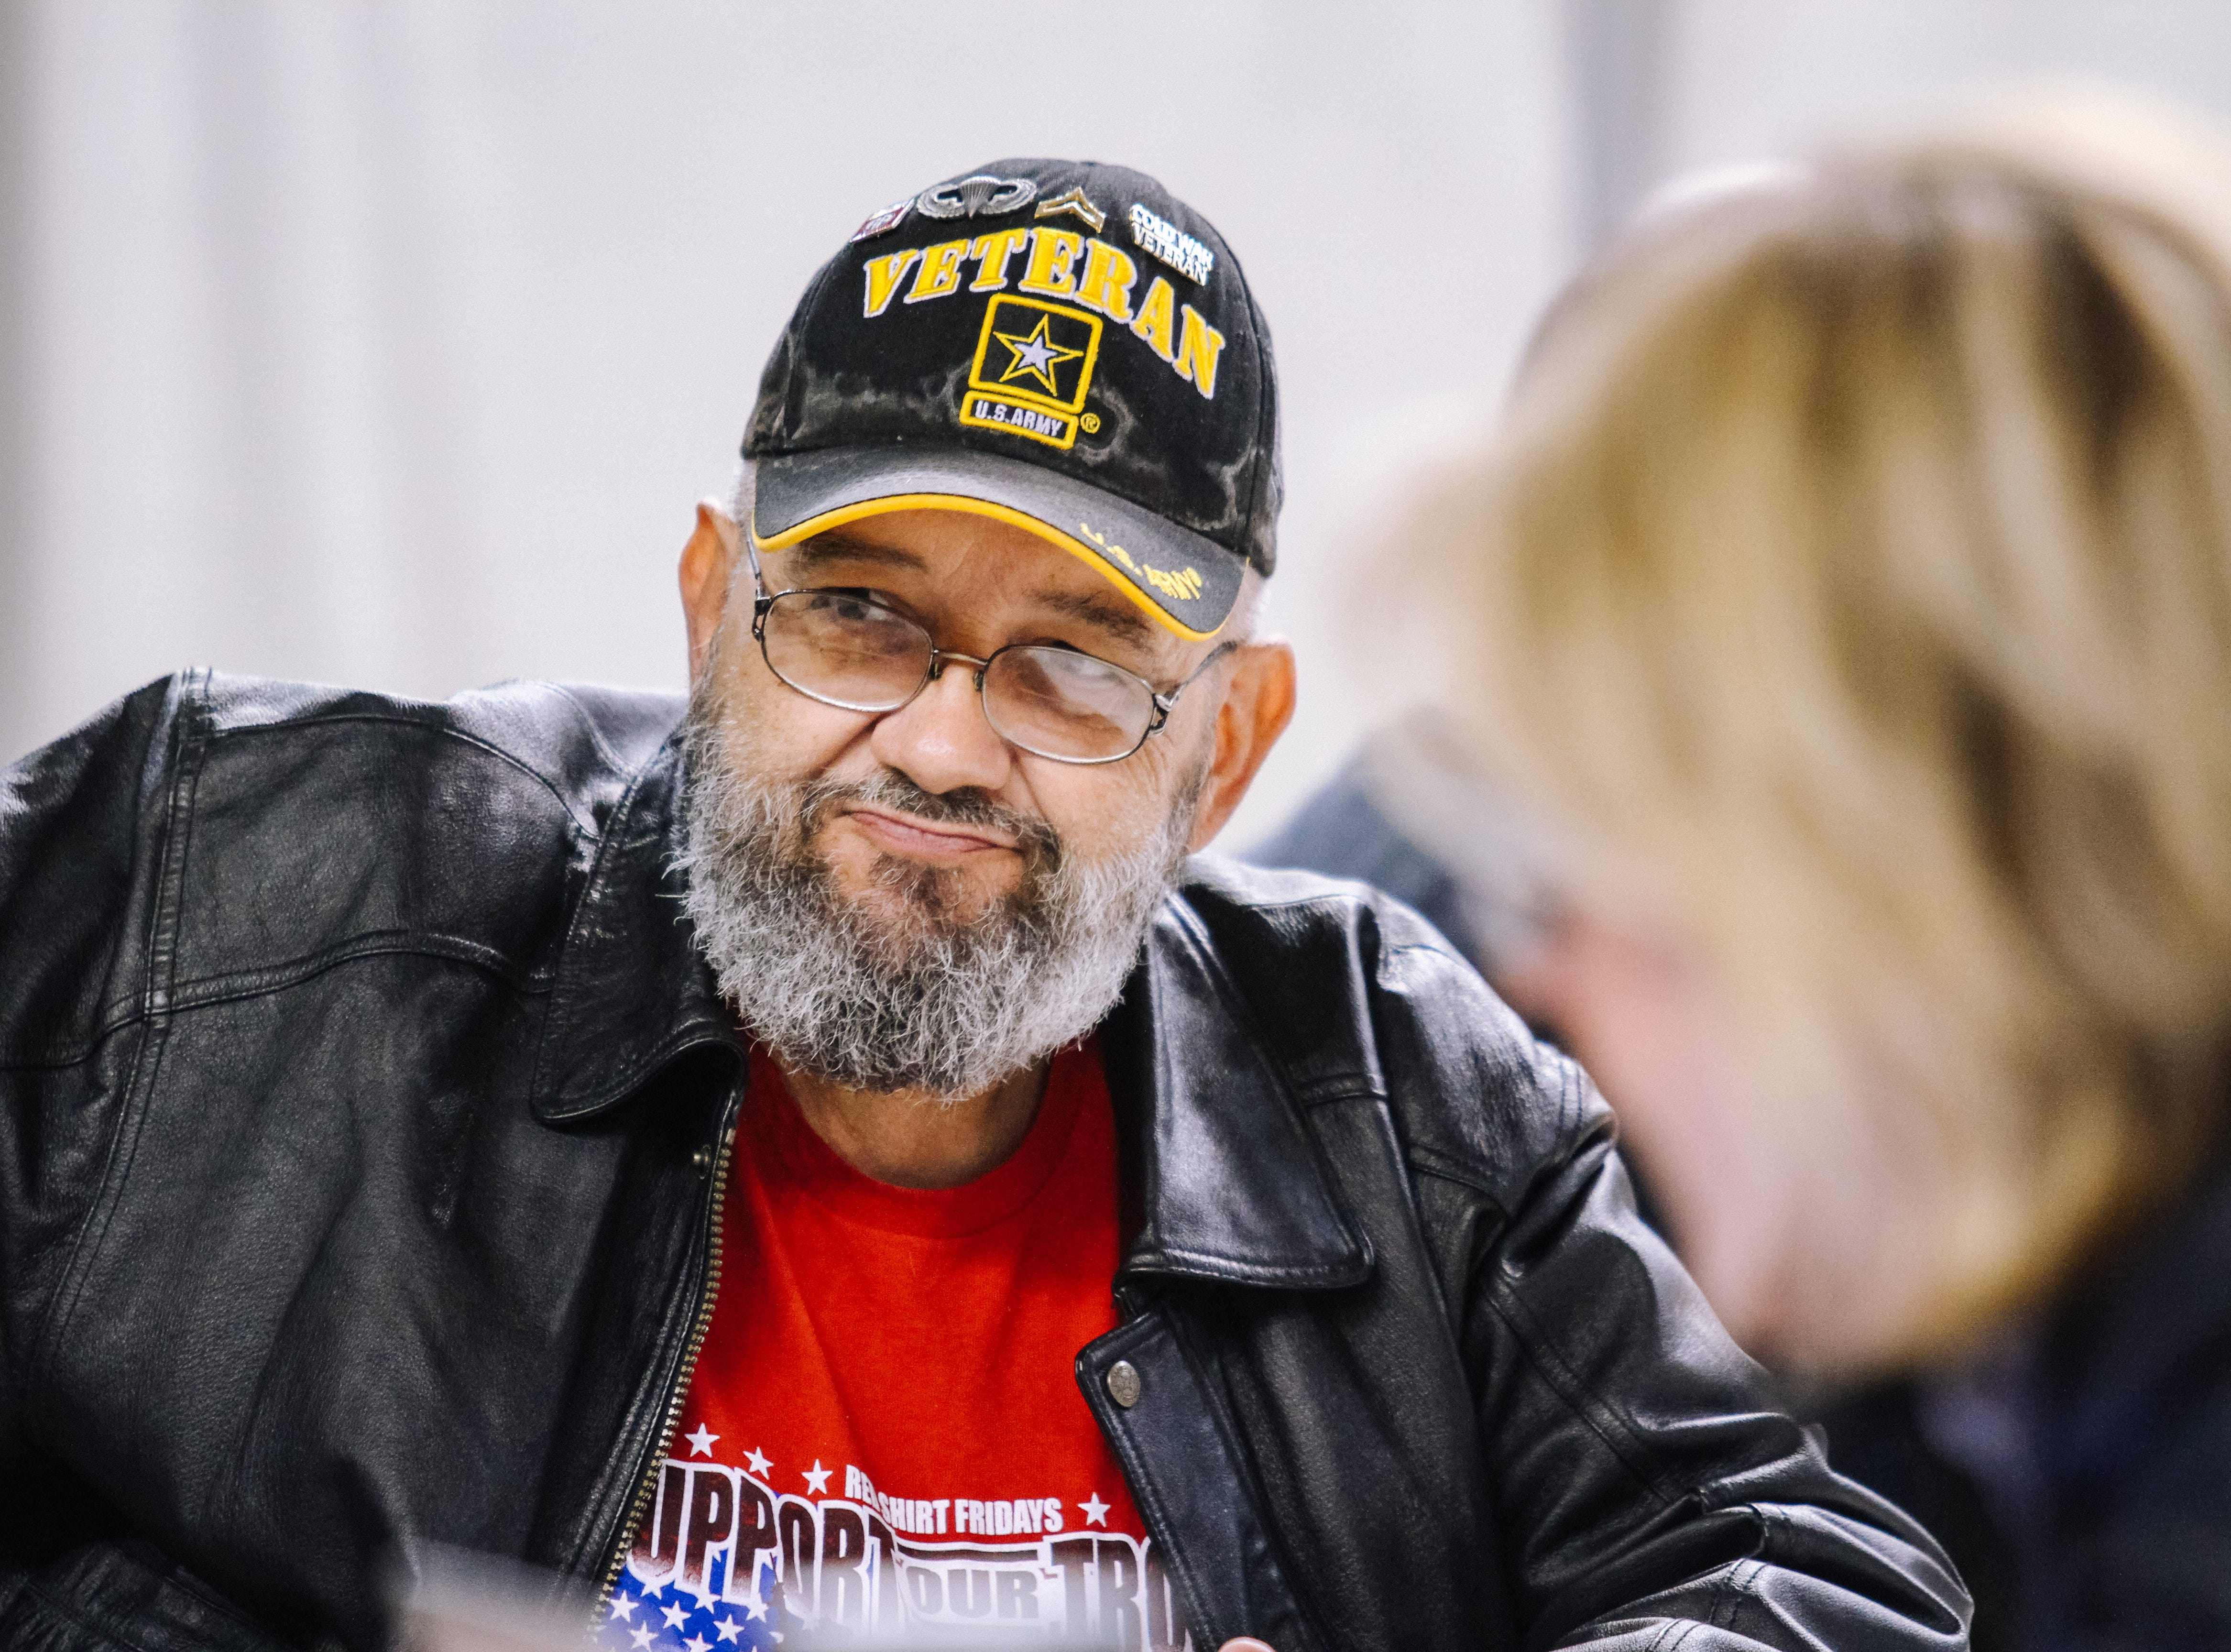 Army Veteran, Jack Rynes Jr. sits down with a volunteer at the 2019 Veterans Stand Down Event at the Arizona State Fairgrounds in Phoenix, Arizona on Friday, Jan. 25, 2019.